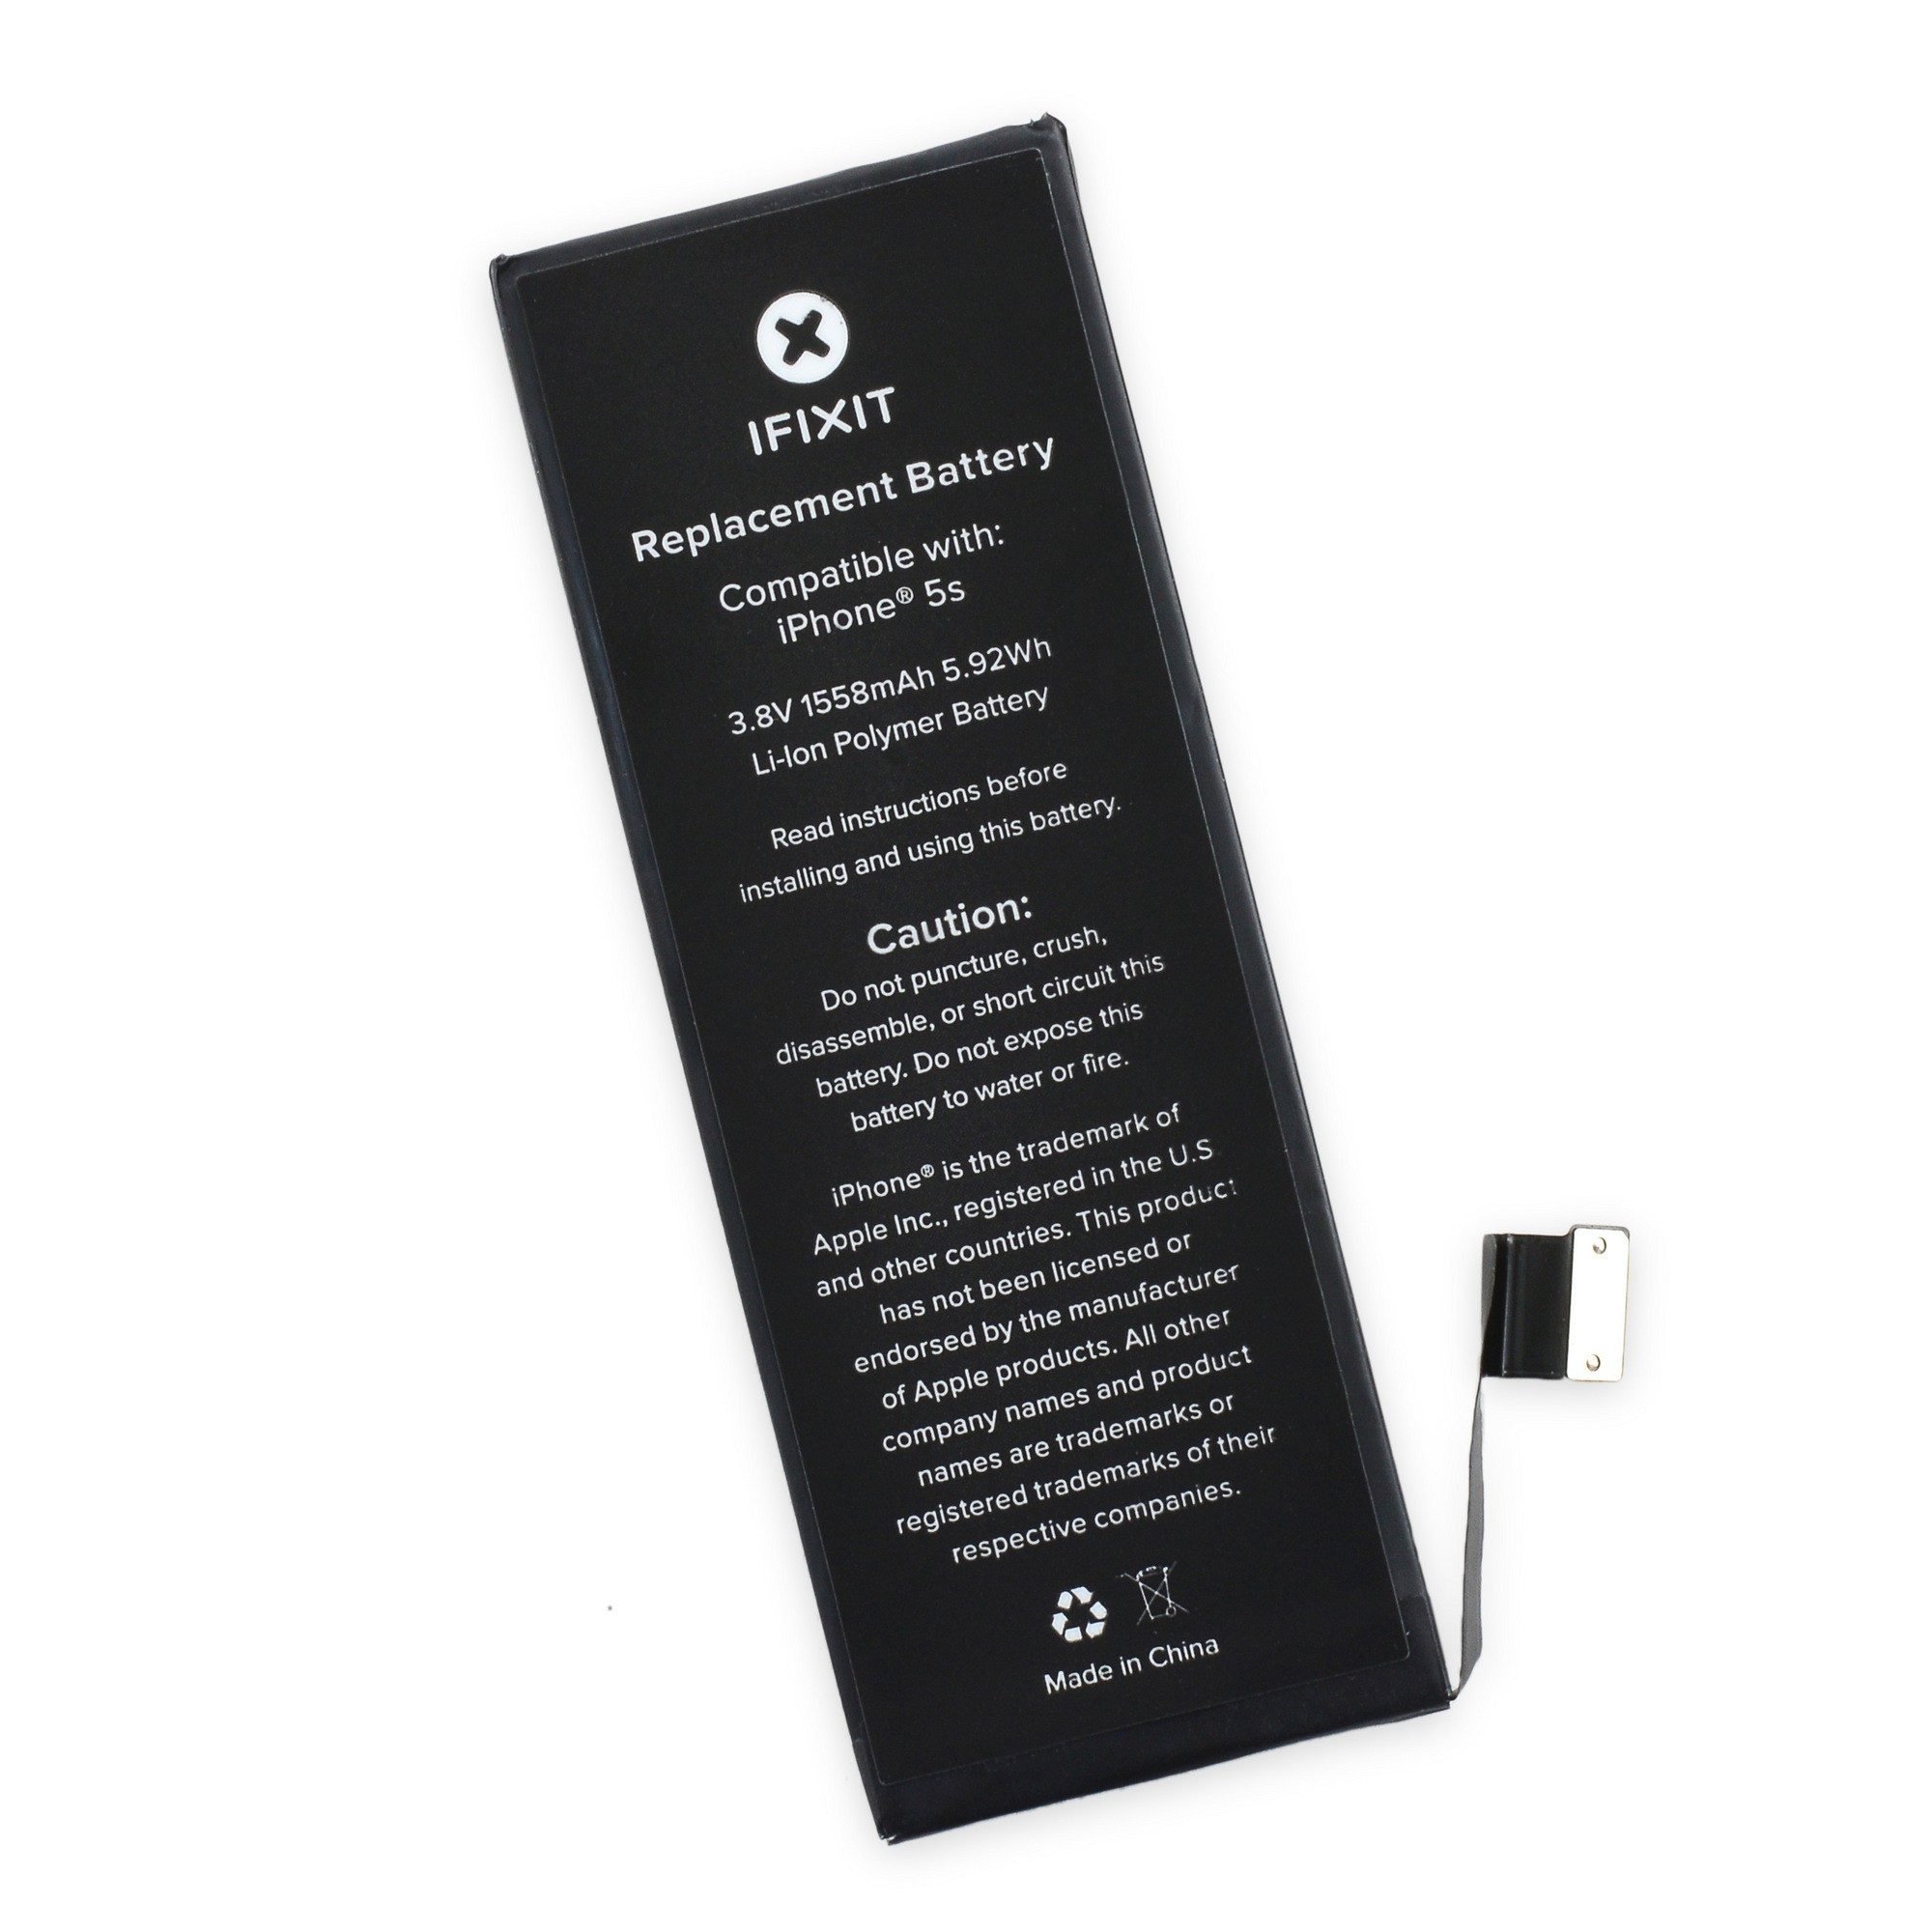 iPhone 5S Battery Replacement by iFixit, IF124-002-1